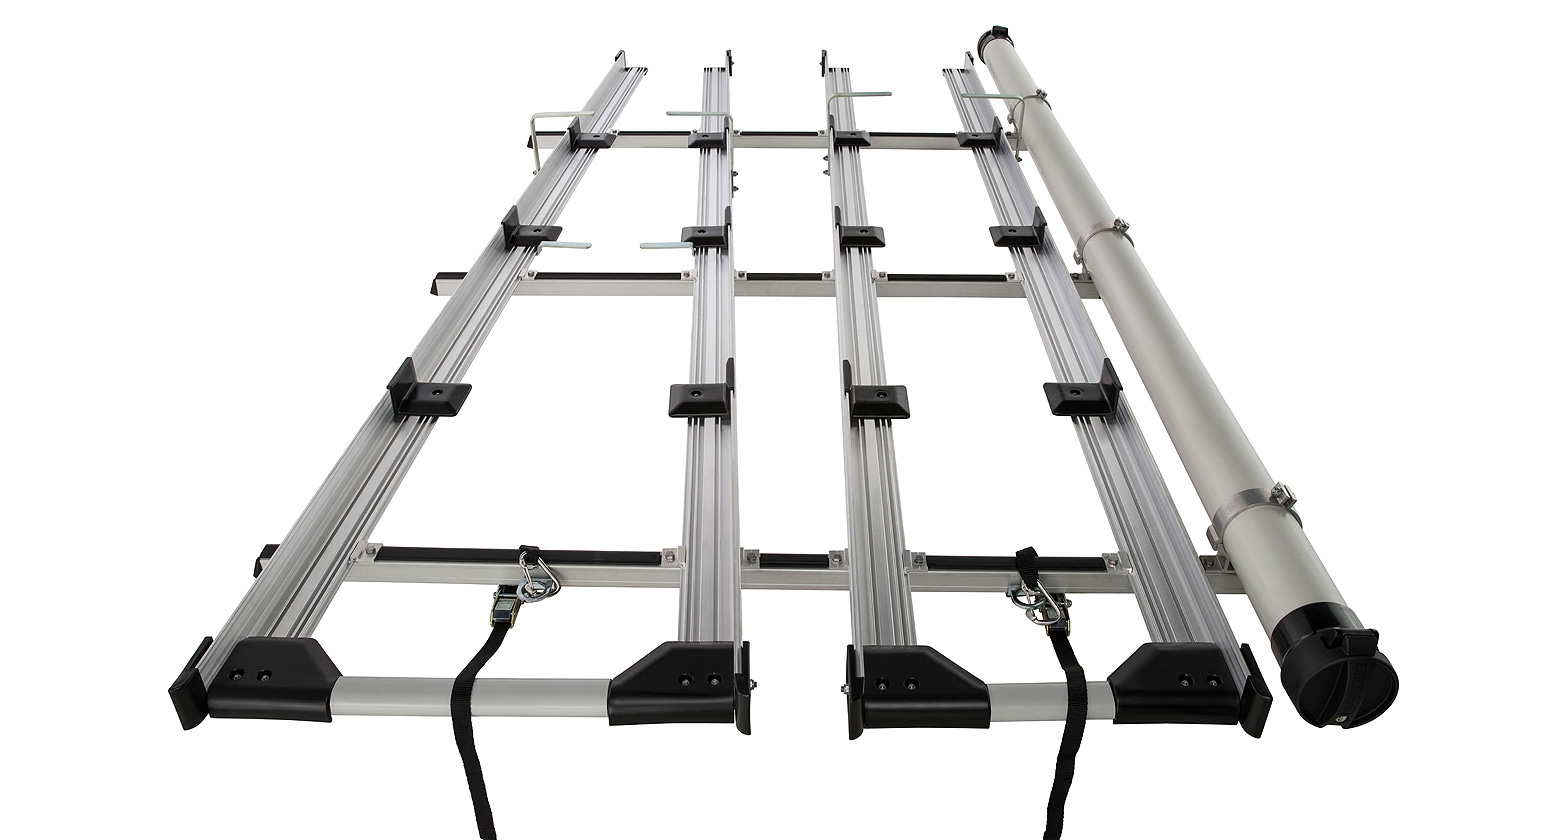 Jb0234 Multislide Double Ladder Rack System With